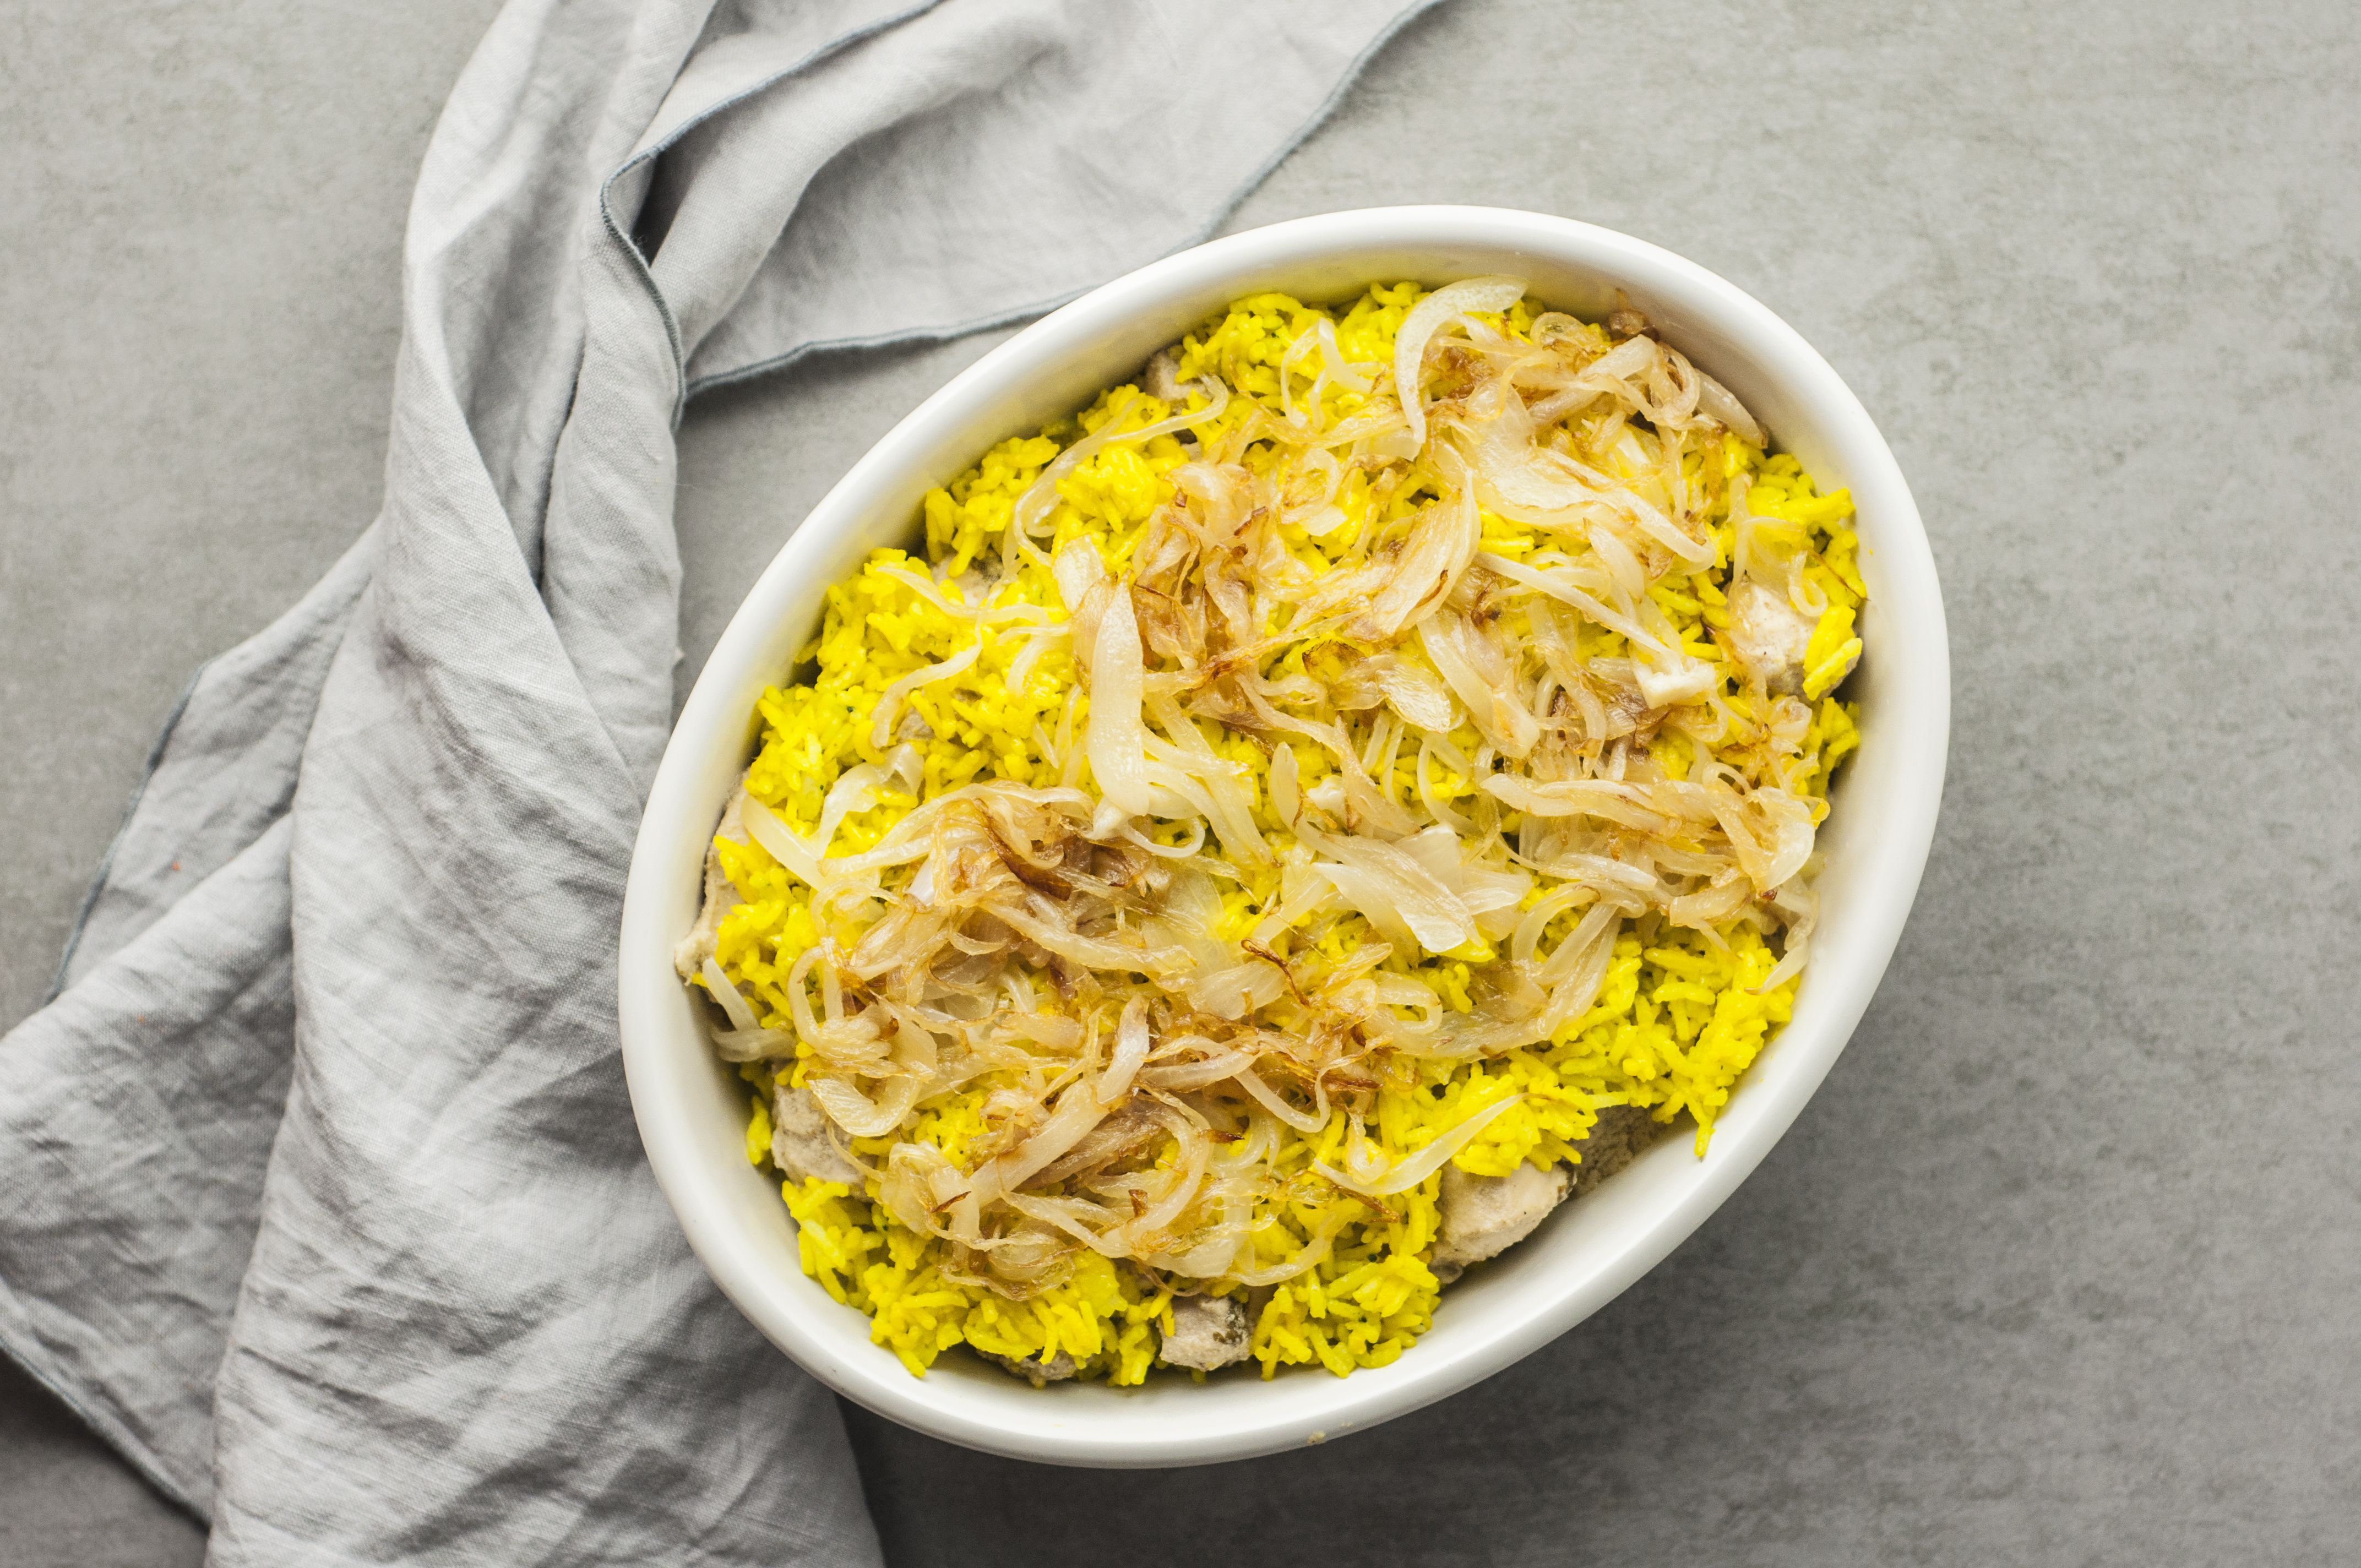 Layer rice and meat in cooking dish